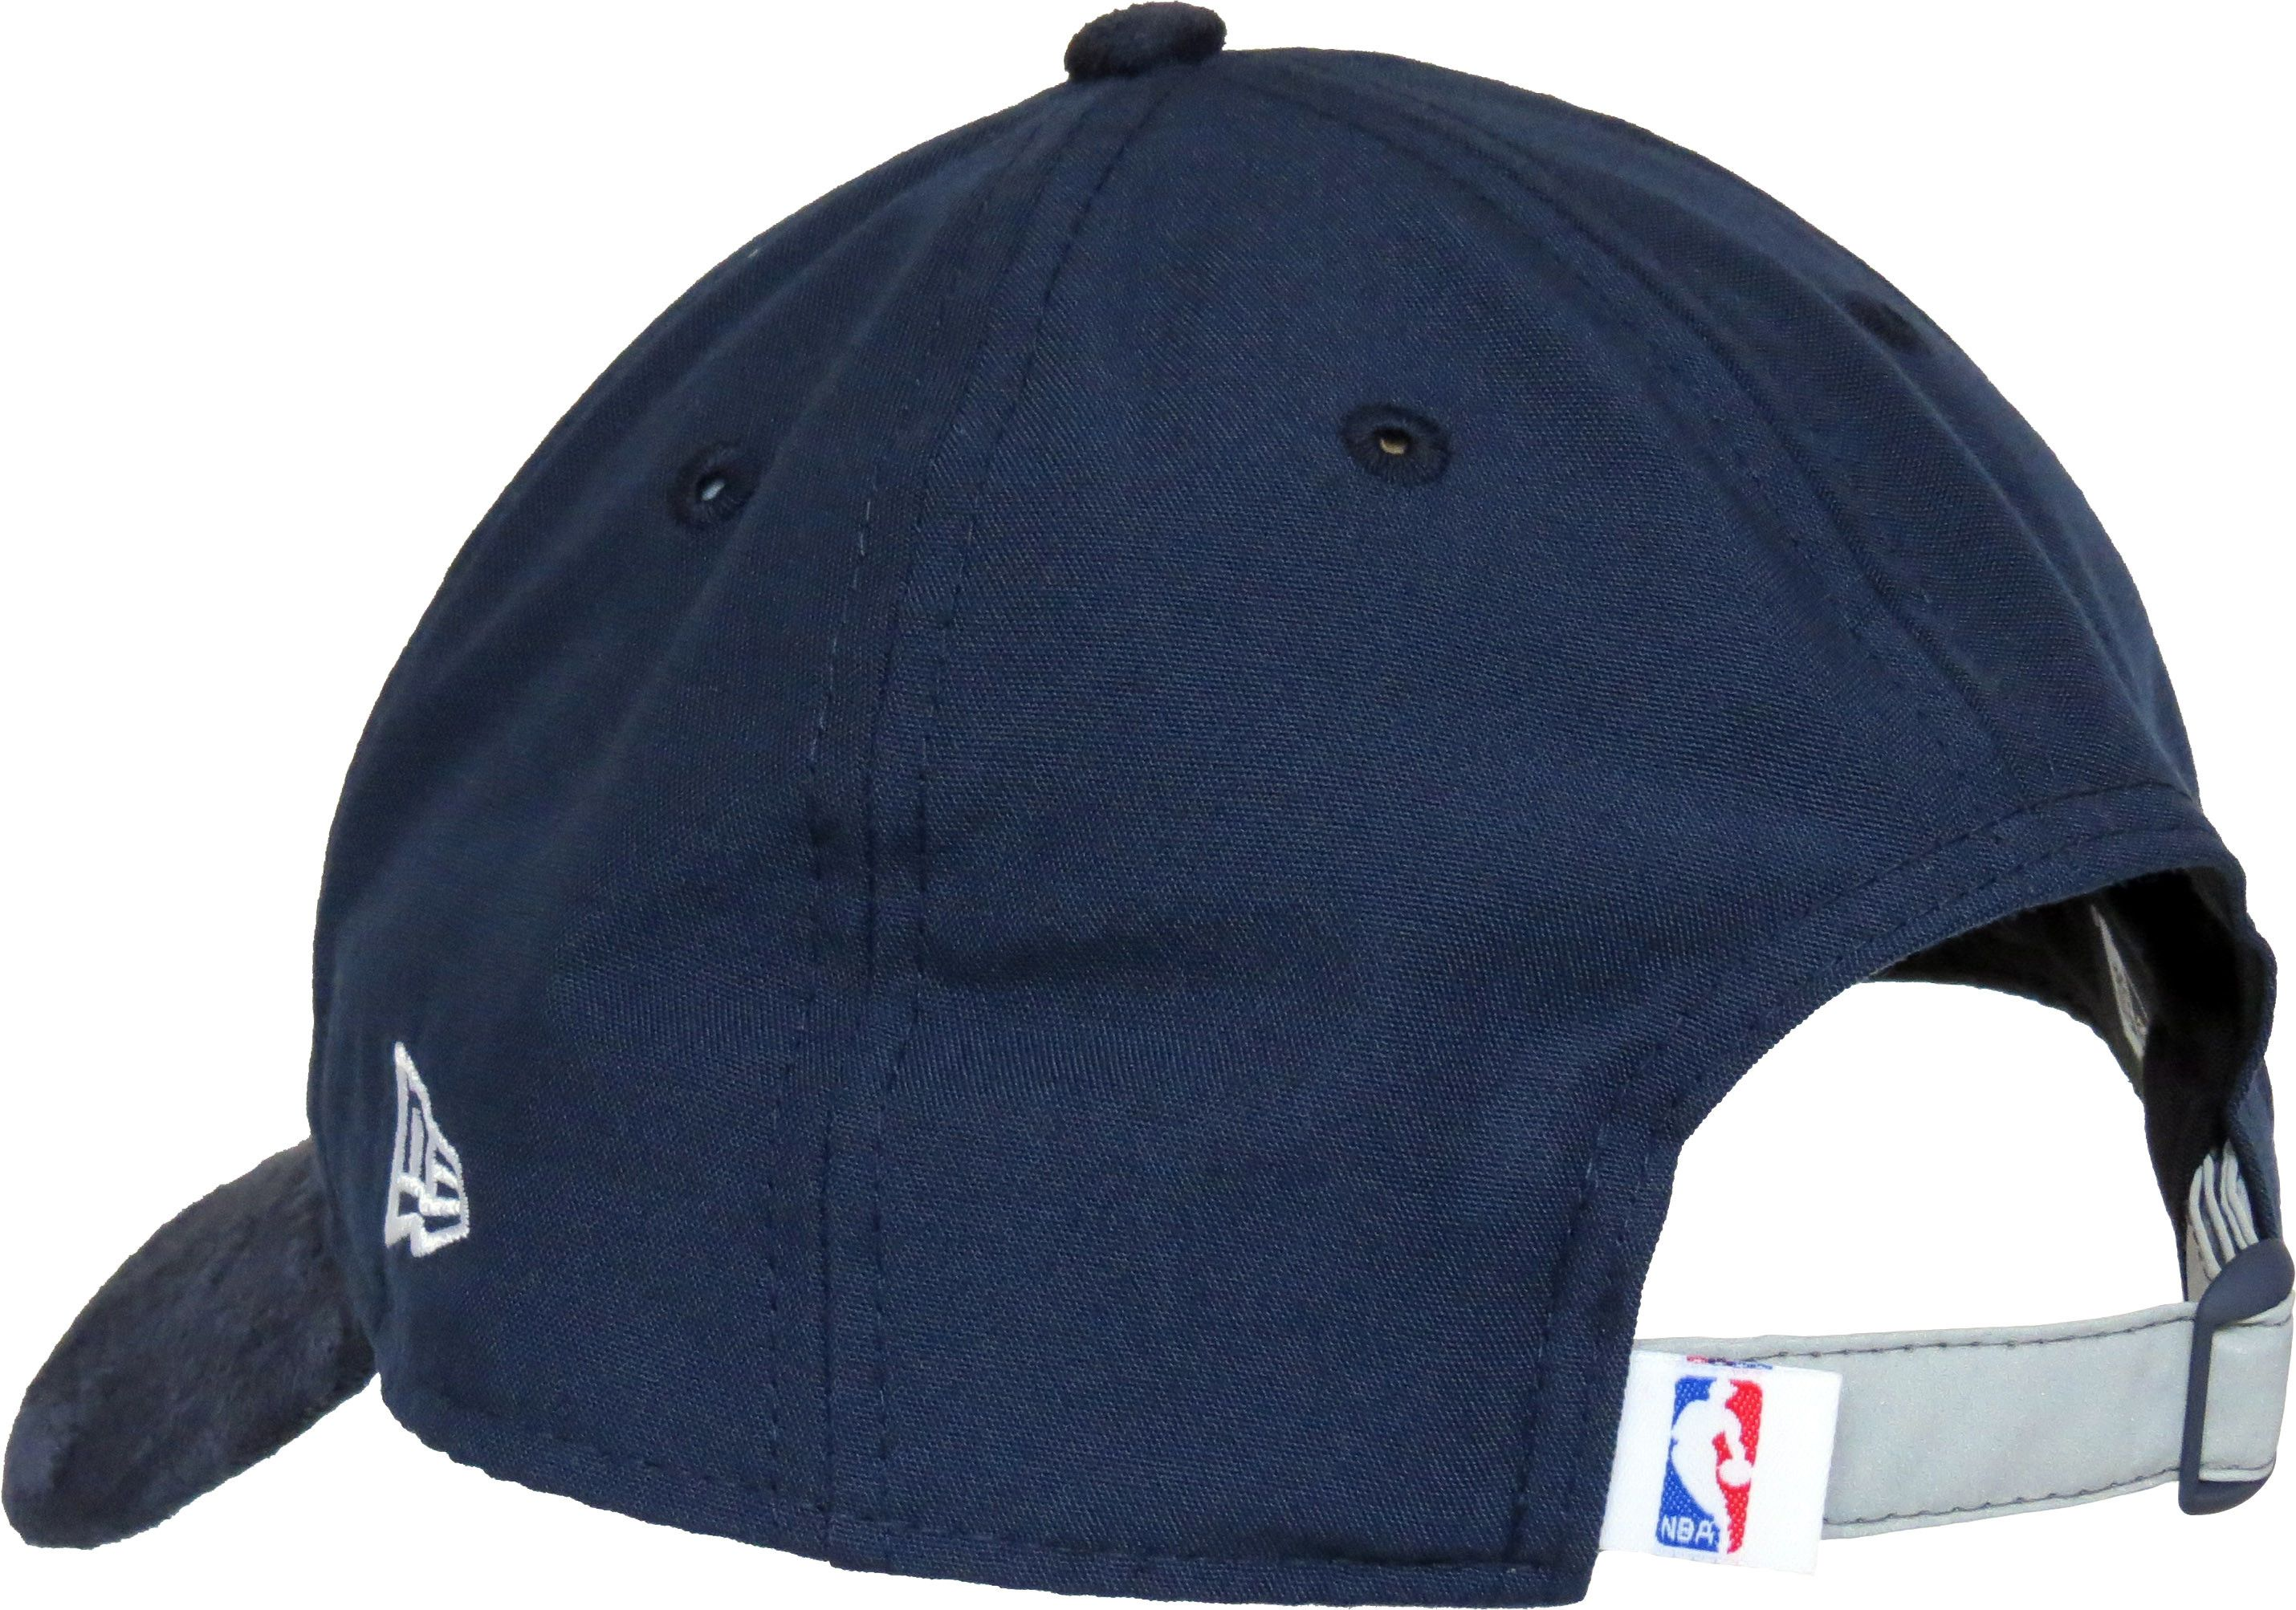 2a00ddee832 New Era 920 NBA 2017 Draft On Court Adjustable Cap Navy Blue